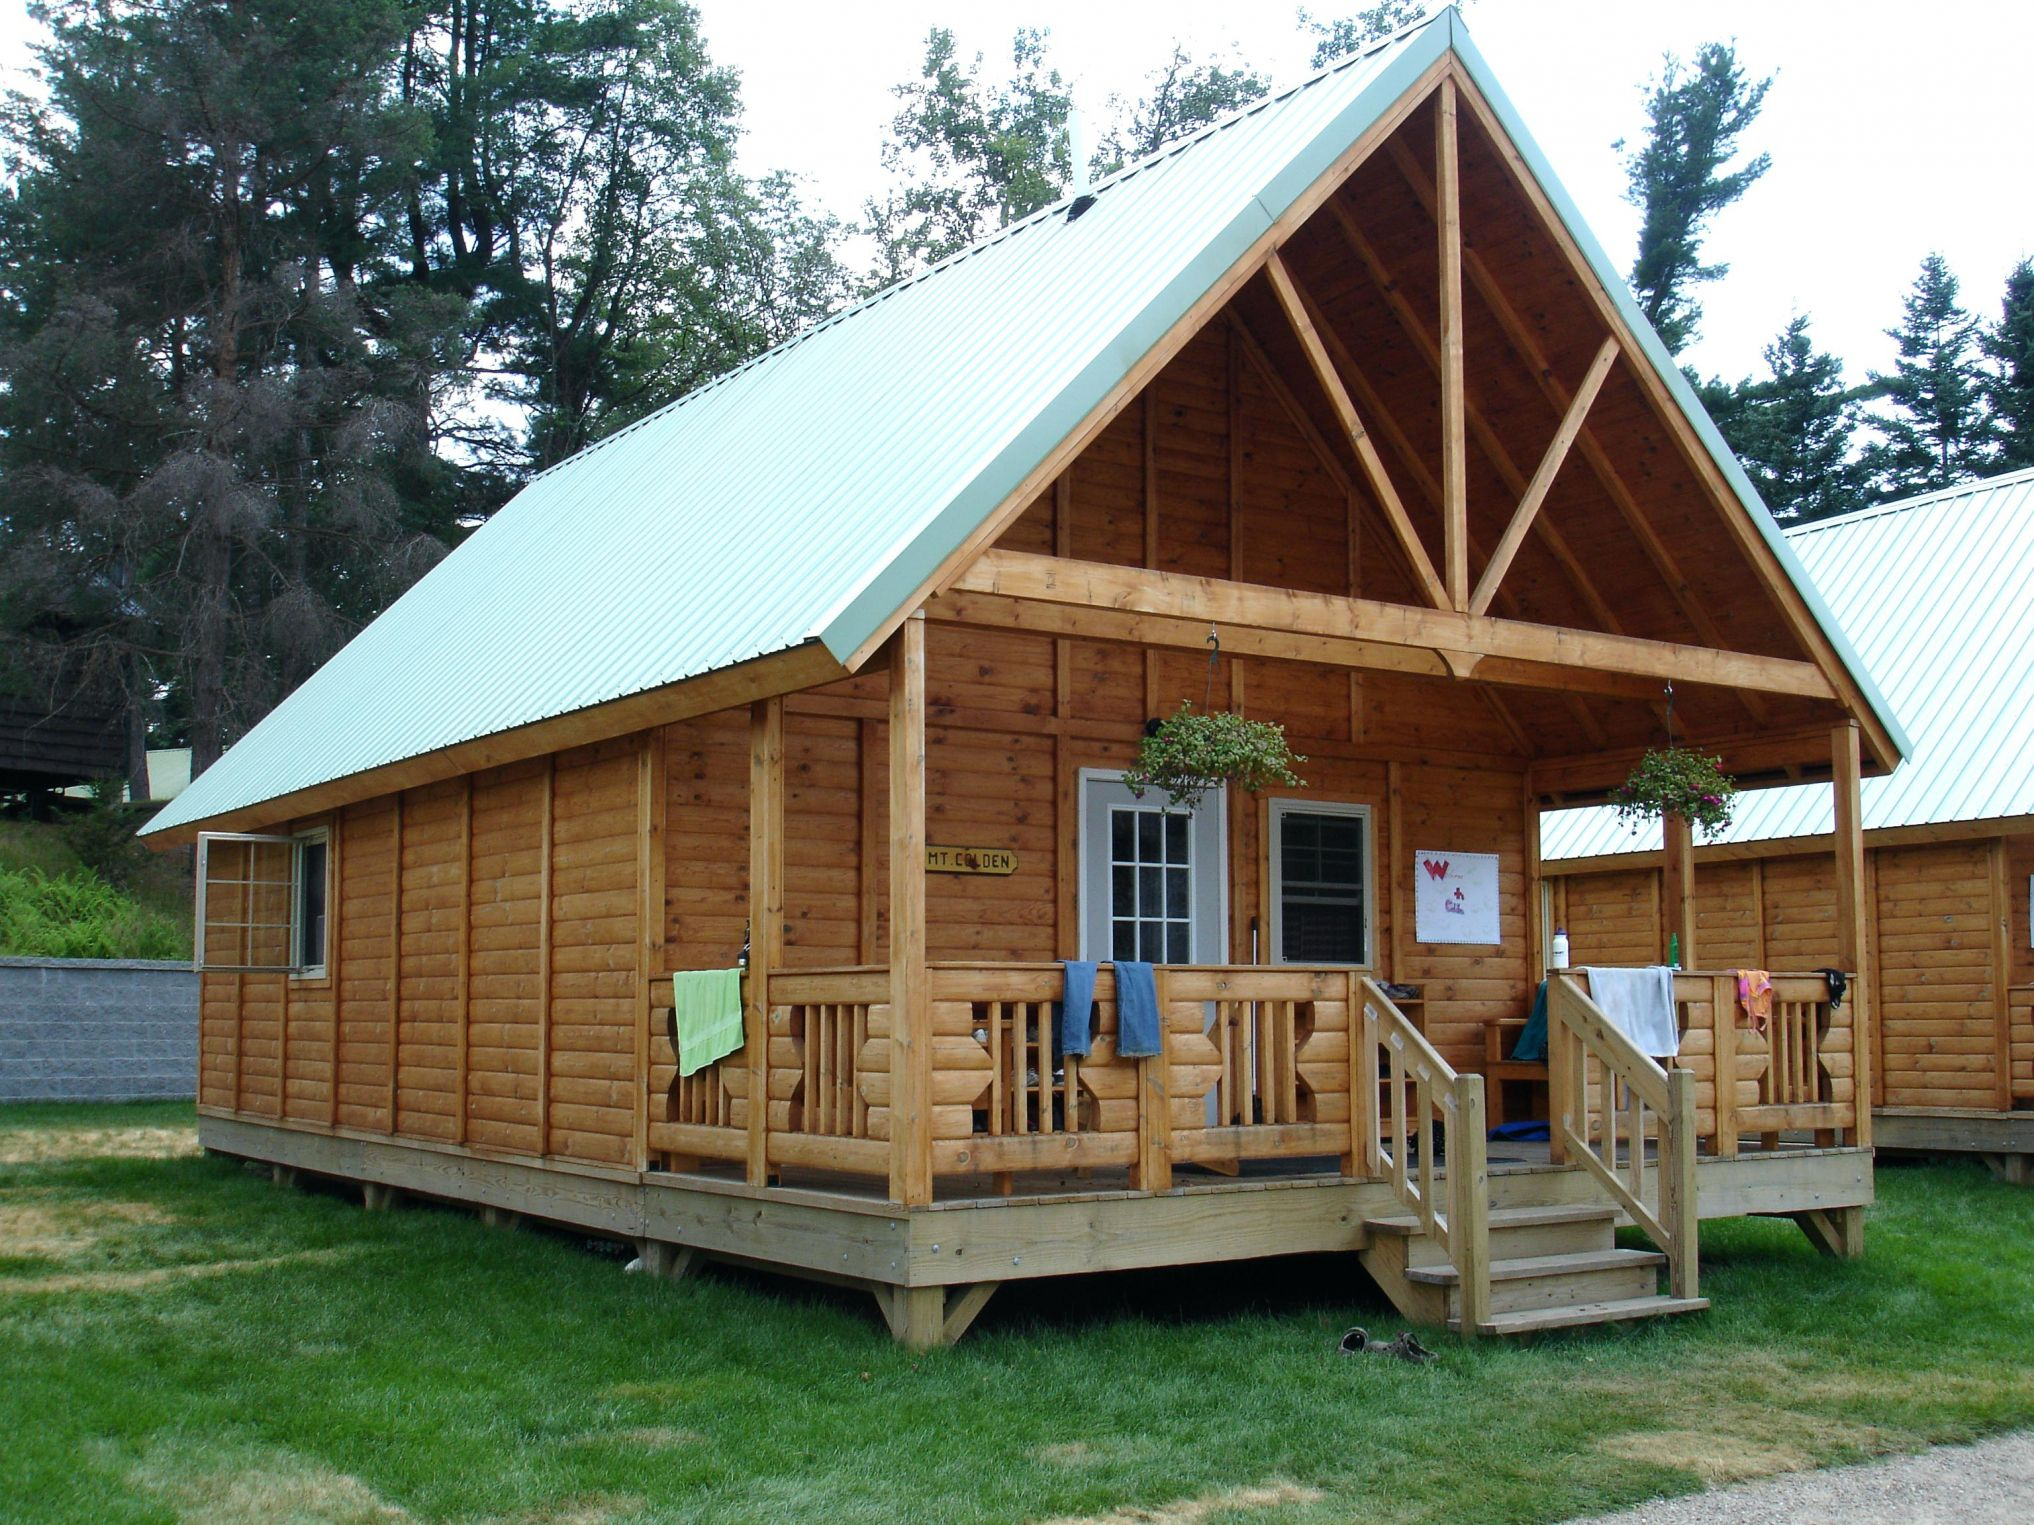 wisconsin cabin att rent for awesome x clam amazing cabins ideas cottages lake sale photo of